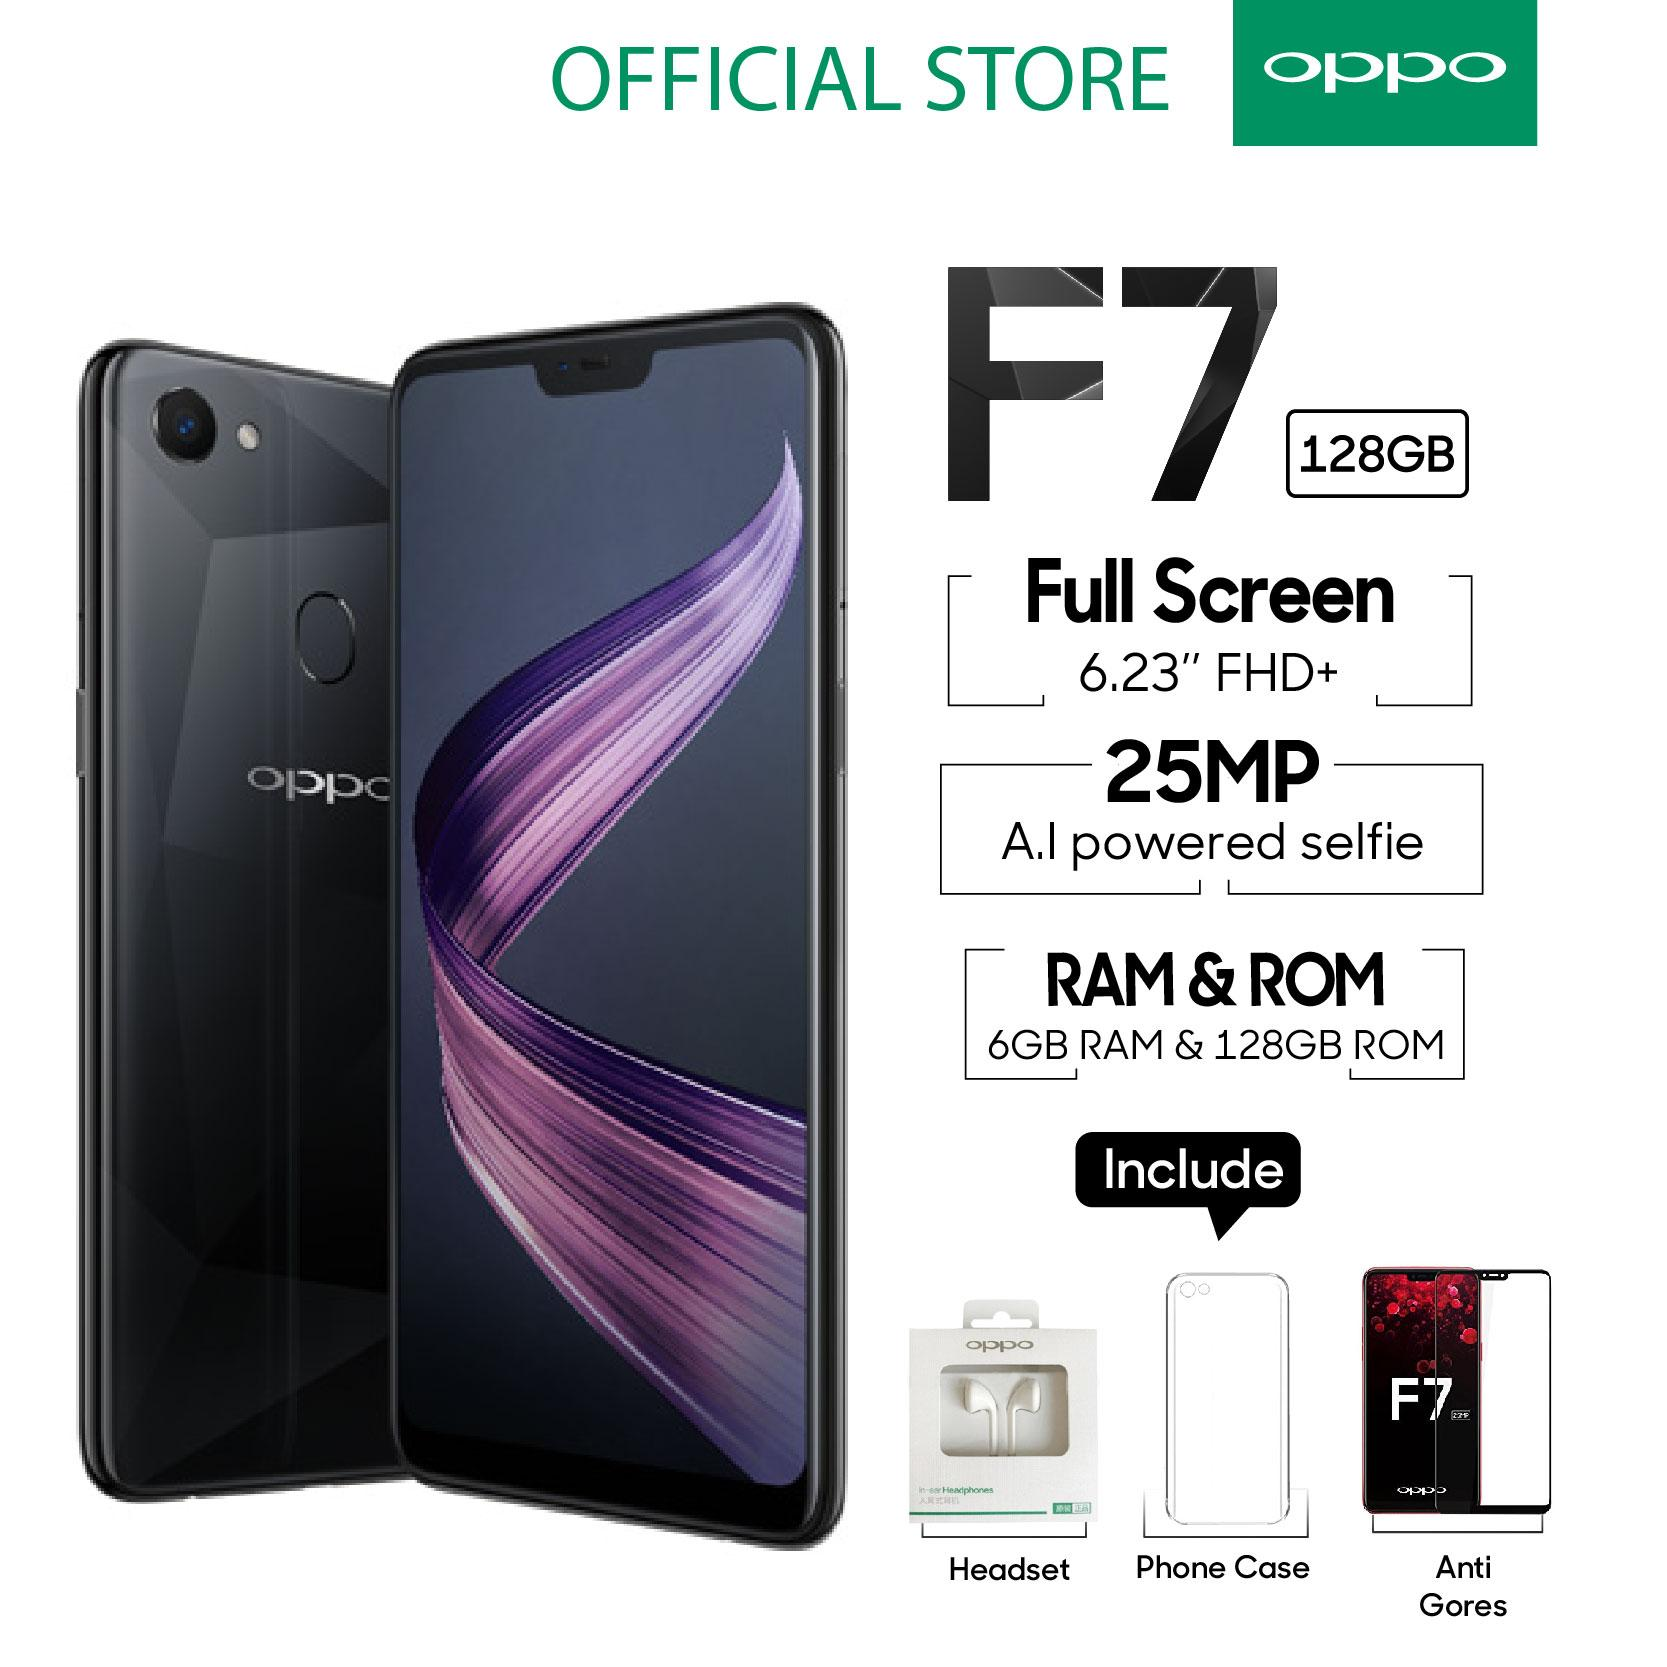 OPPO F7 SMARTPHONE 6GB 128GB Black Al Powered Selfie 25 MP COD